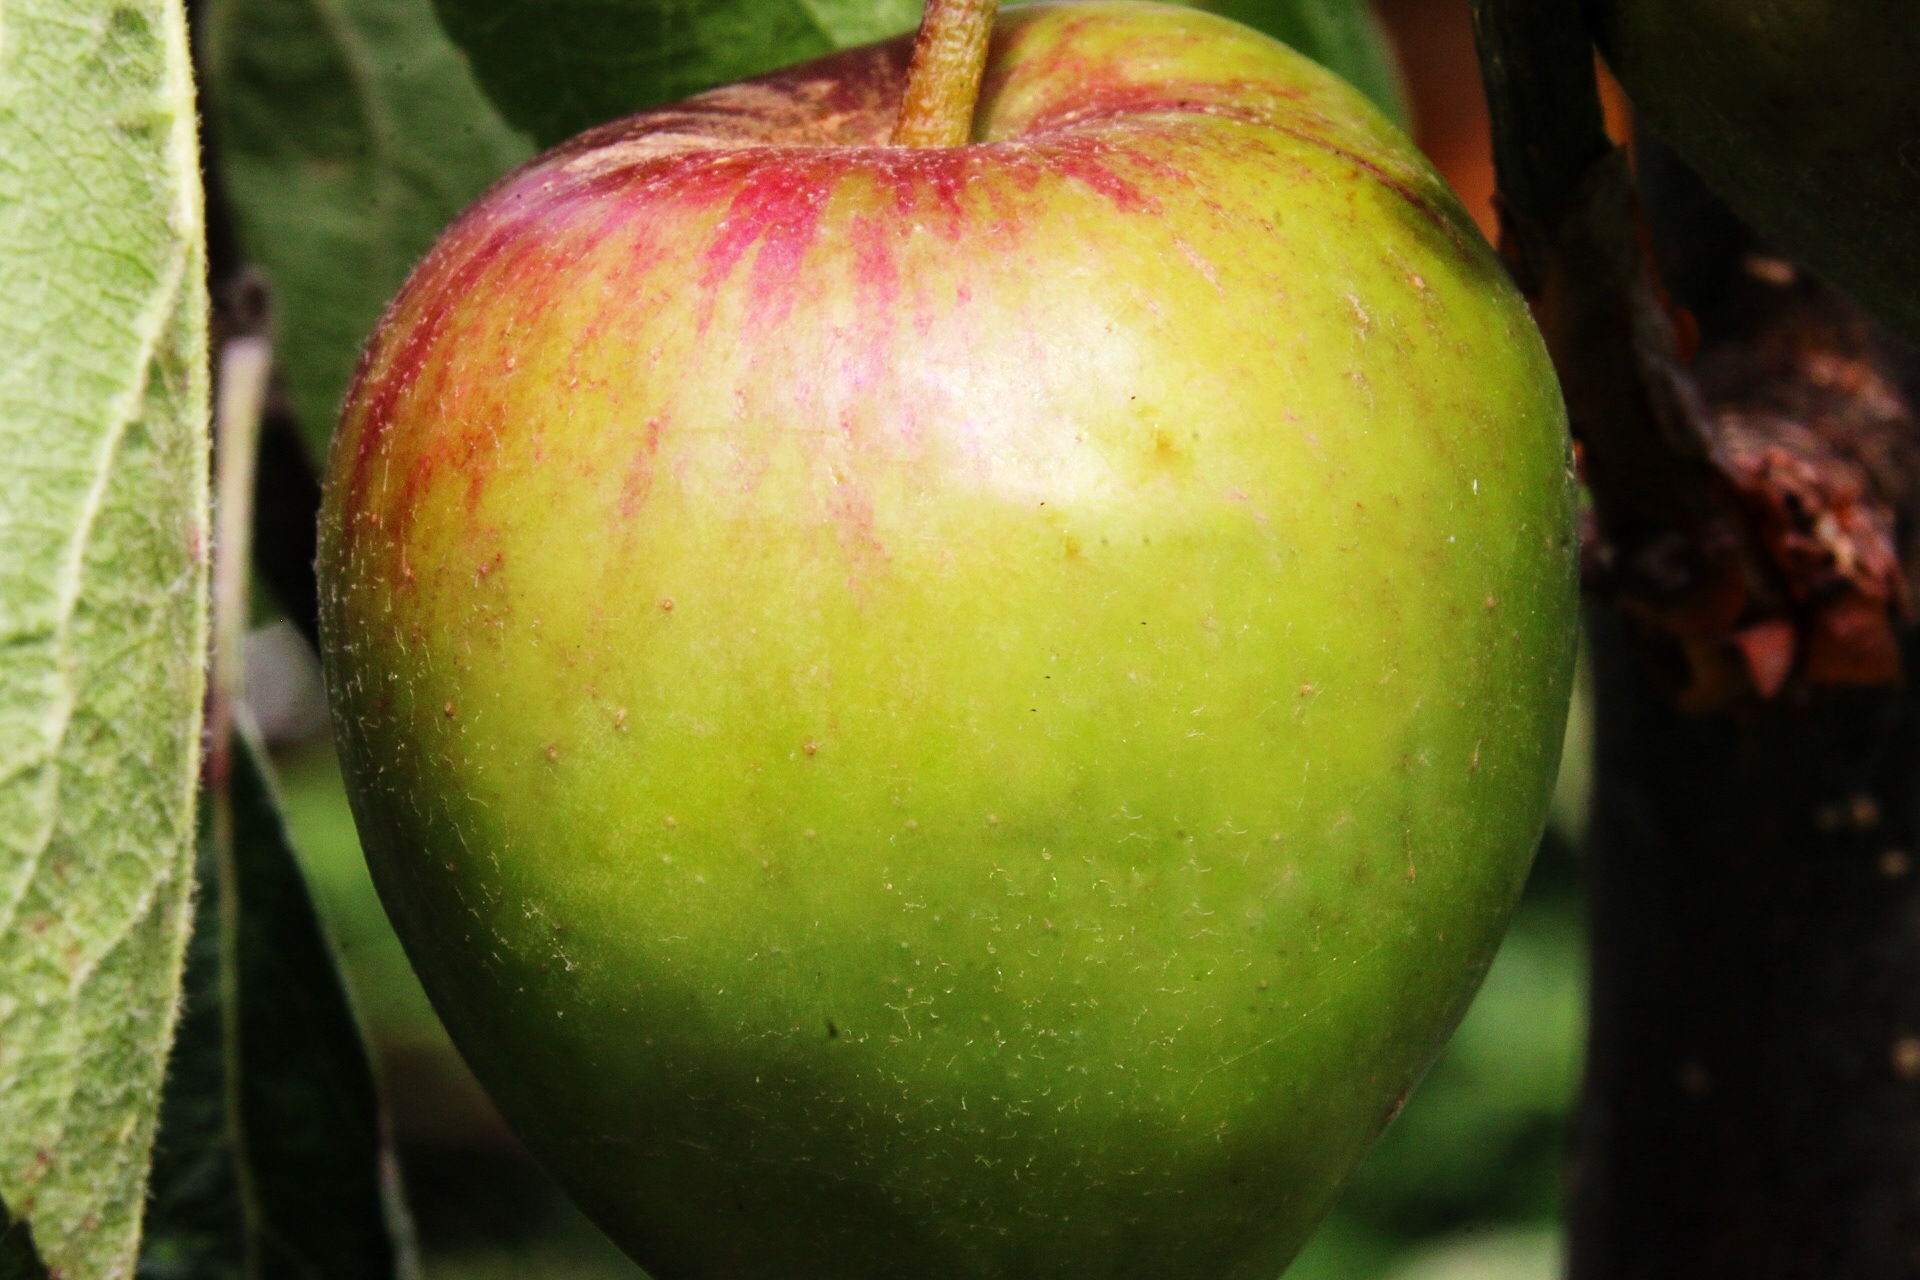 Apple on the Tree...10071635 by Michael jjg